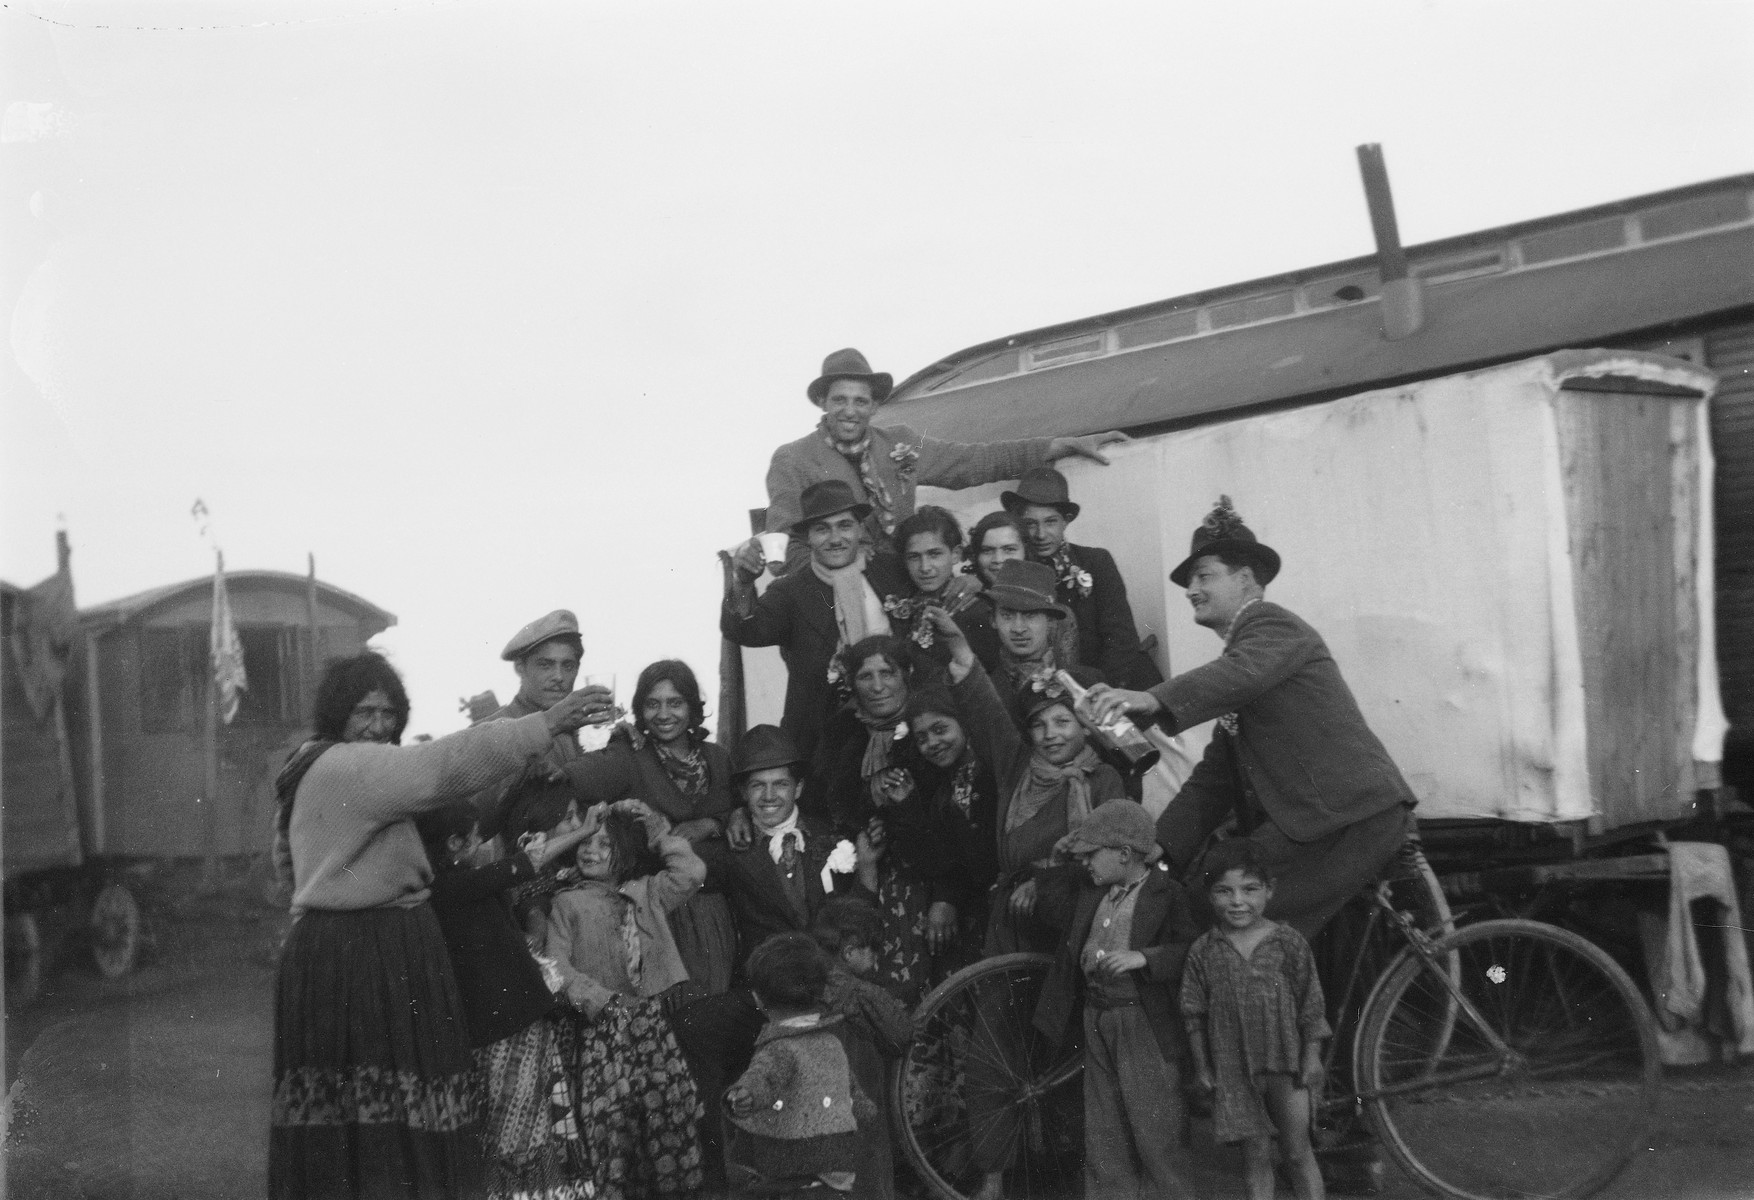 A Romani (Gypsy) group celebrates (possibly a wedding), as several raise their drinks in a toast.